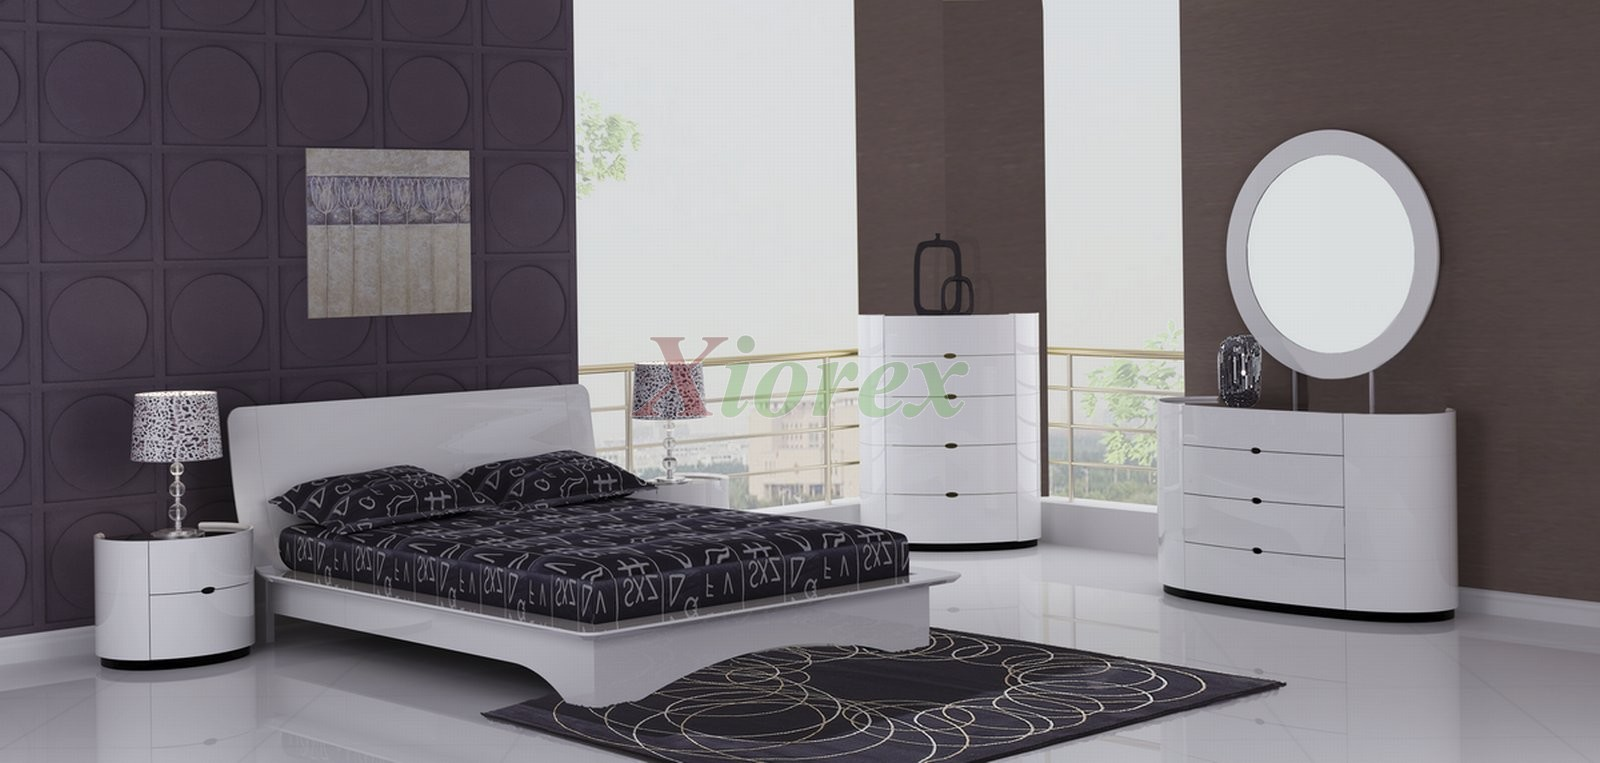 eri all white modern bedroom furniture sets canada xiorex 17826 | eri all white modern bedroom furniture sets canada xiorex